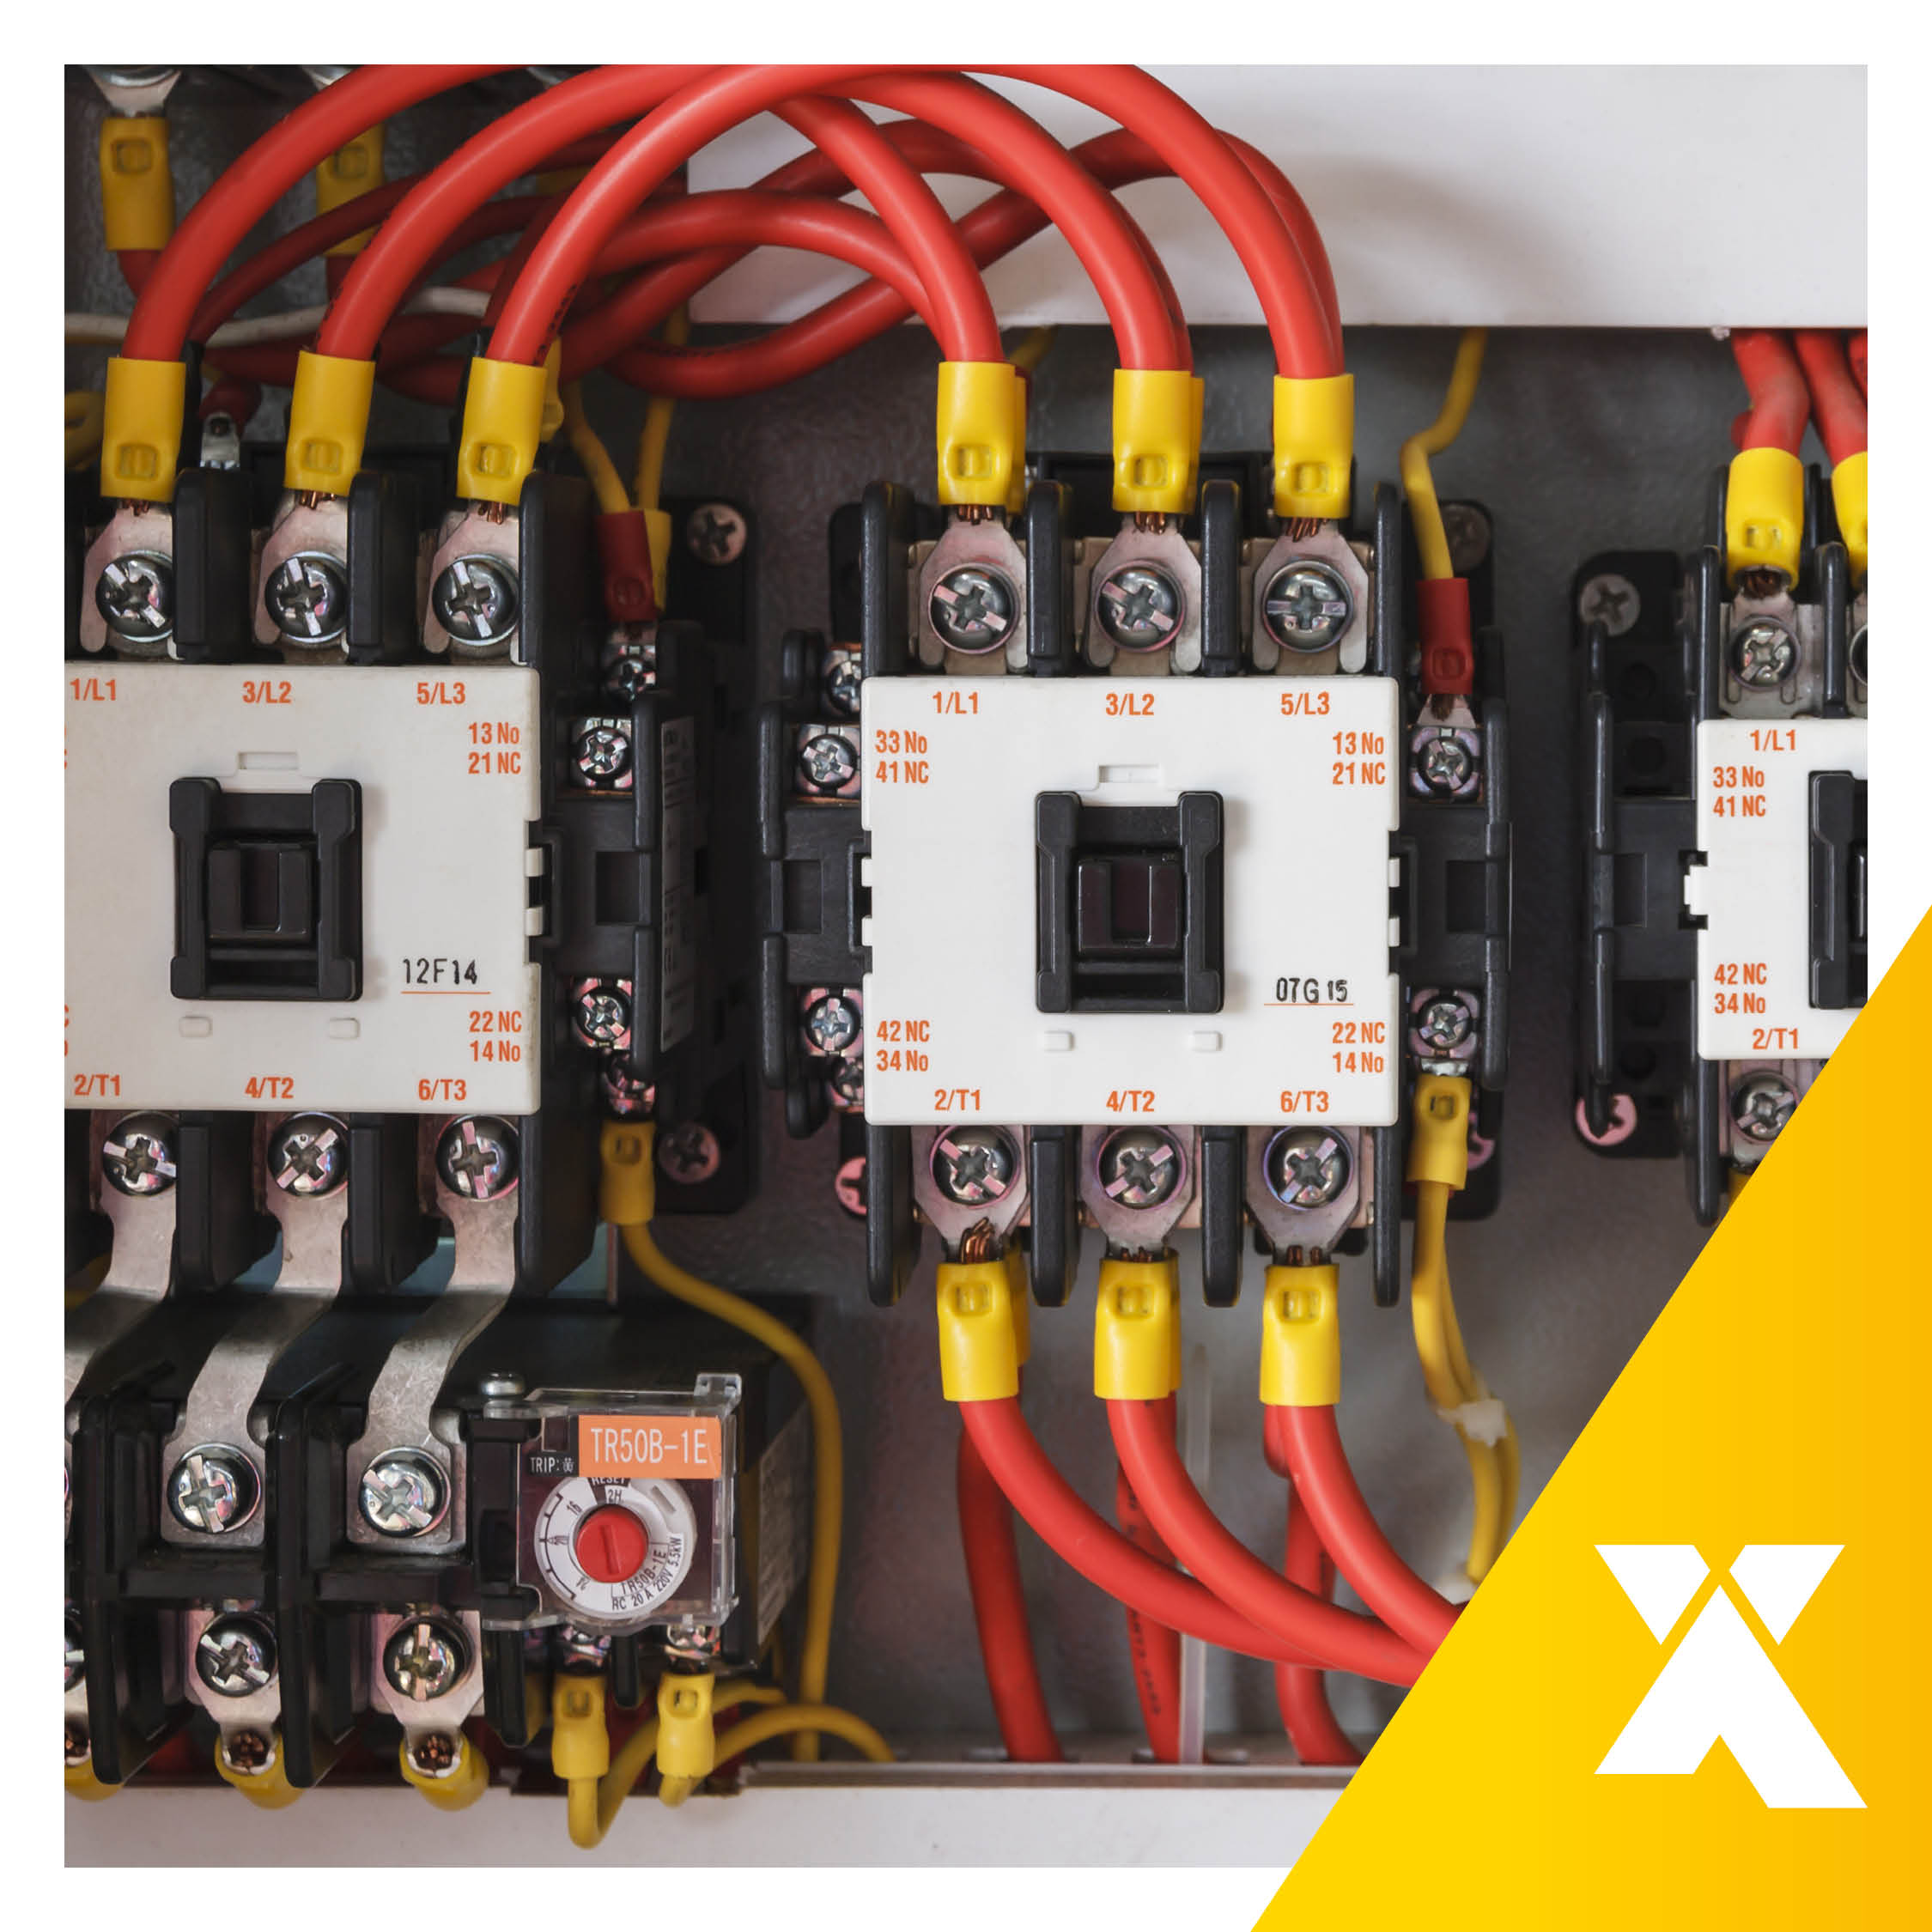 Picture taken by Axxa Ltd: Contactors installed and ready for action!